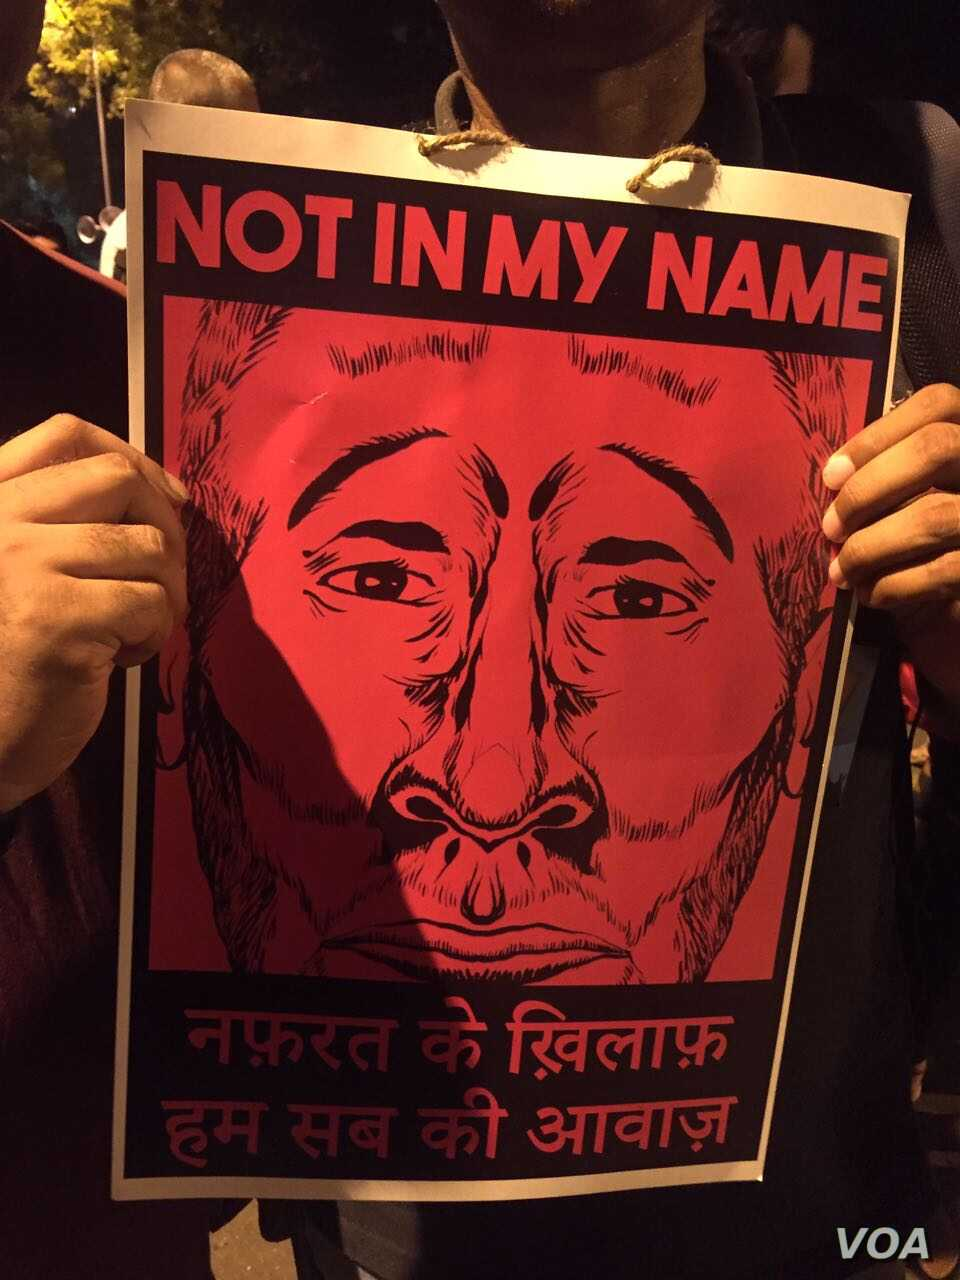 Indian Citizens Protest Mob Attacks Targeting Muslims, Lower Castes